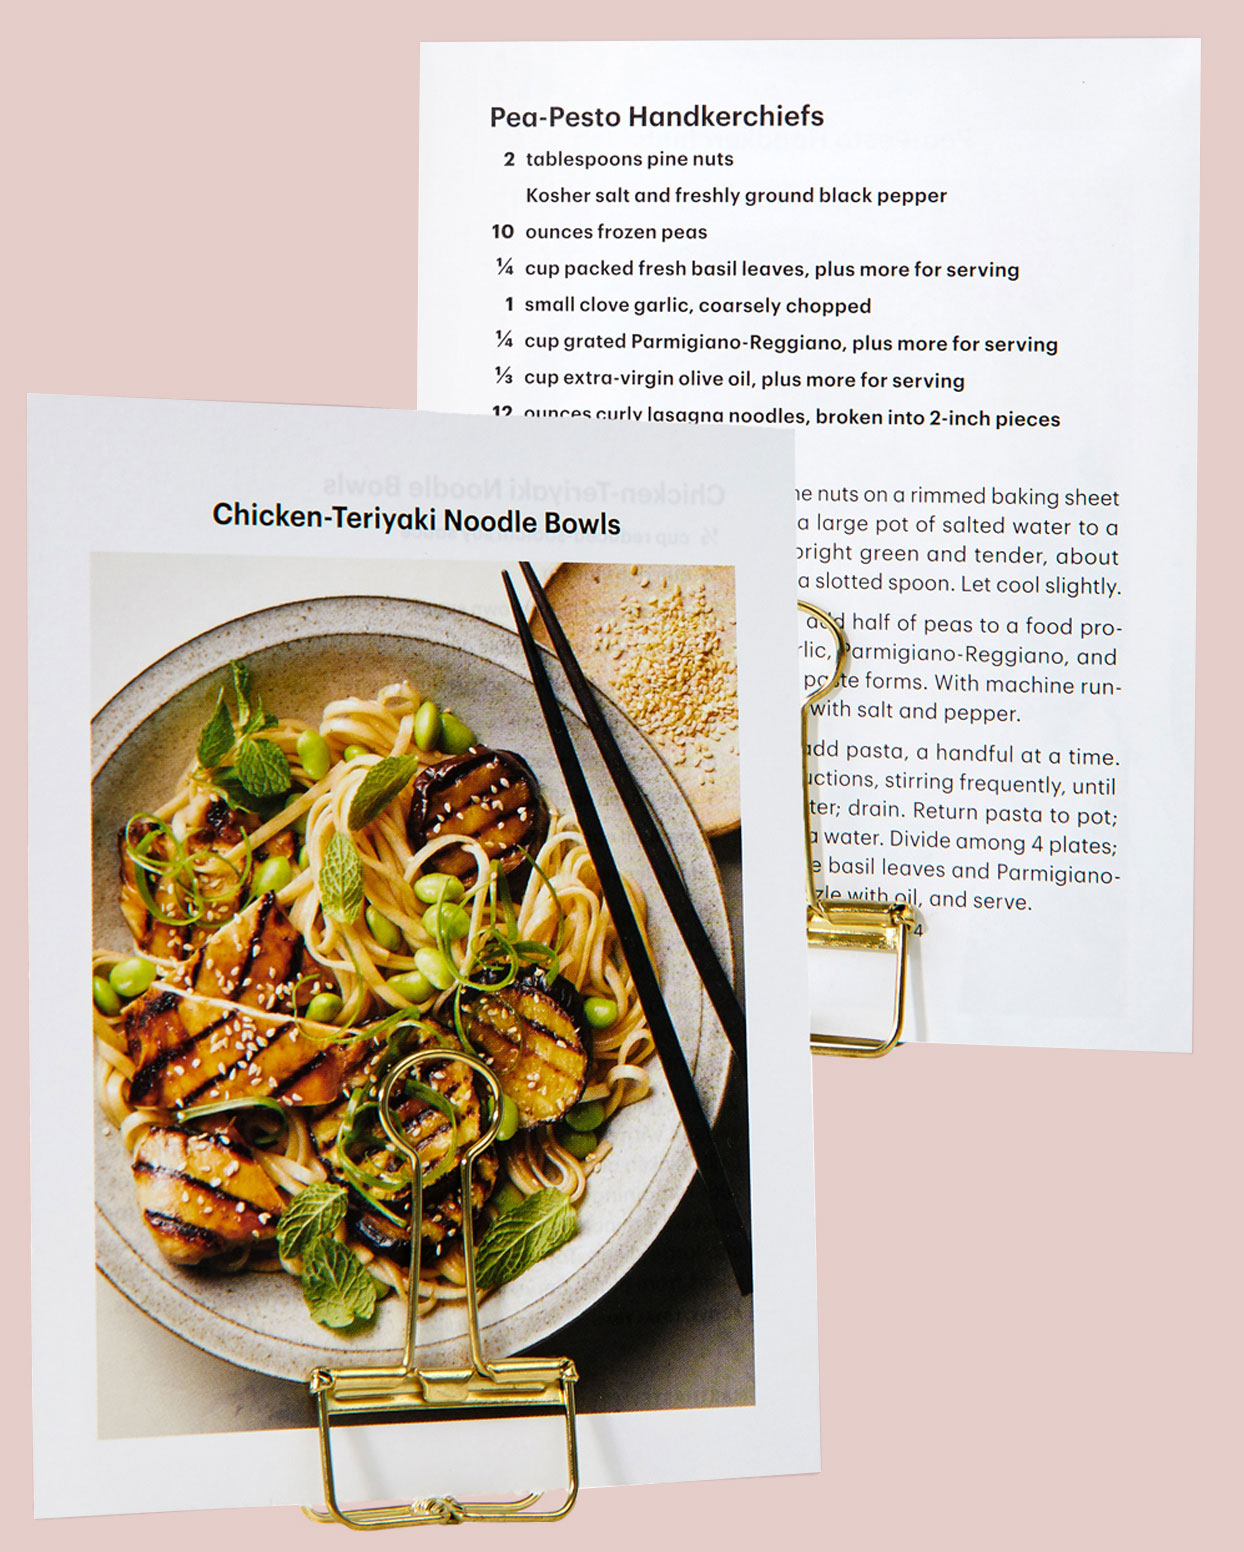 chicken teriyaki noodle bowls recipe print out